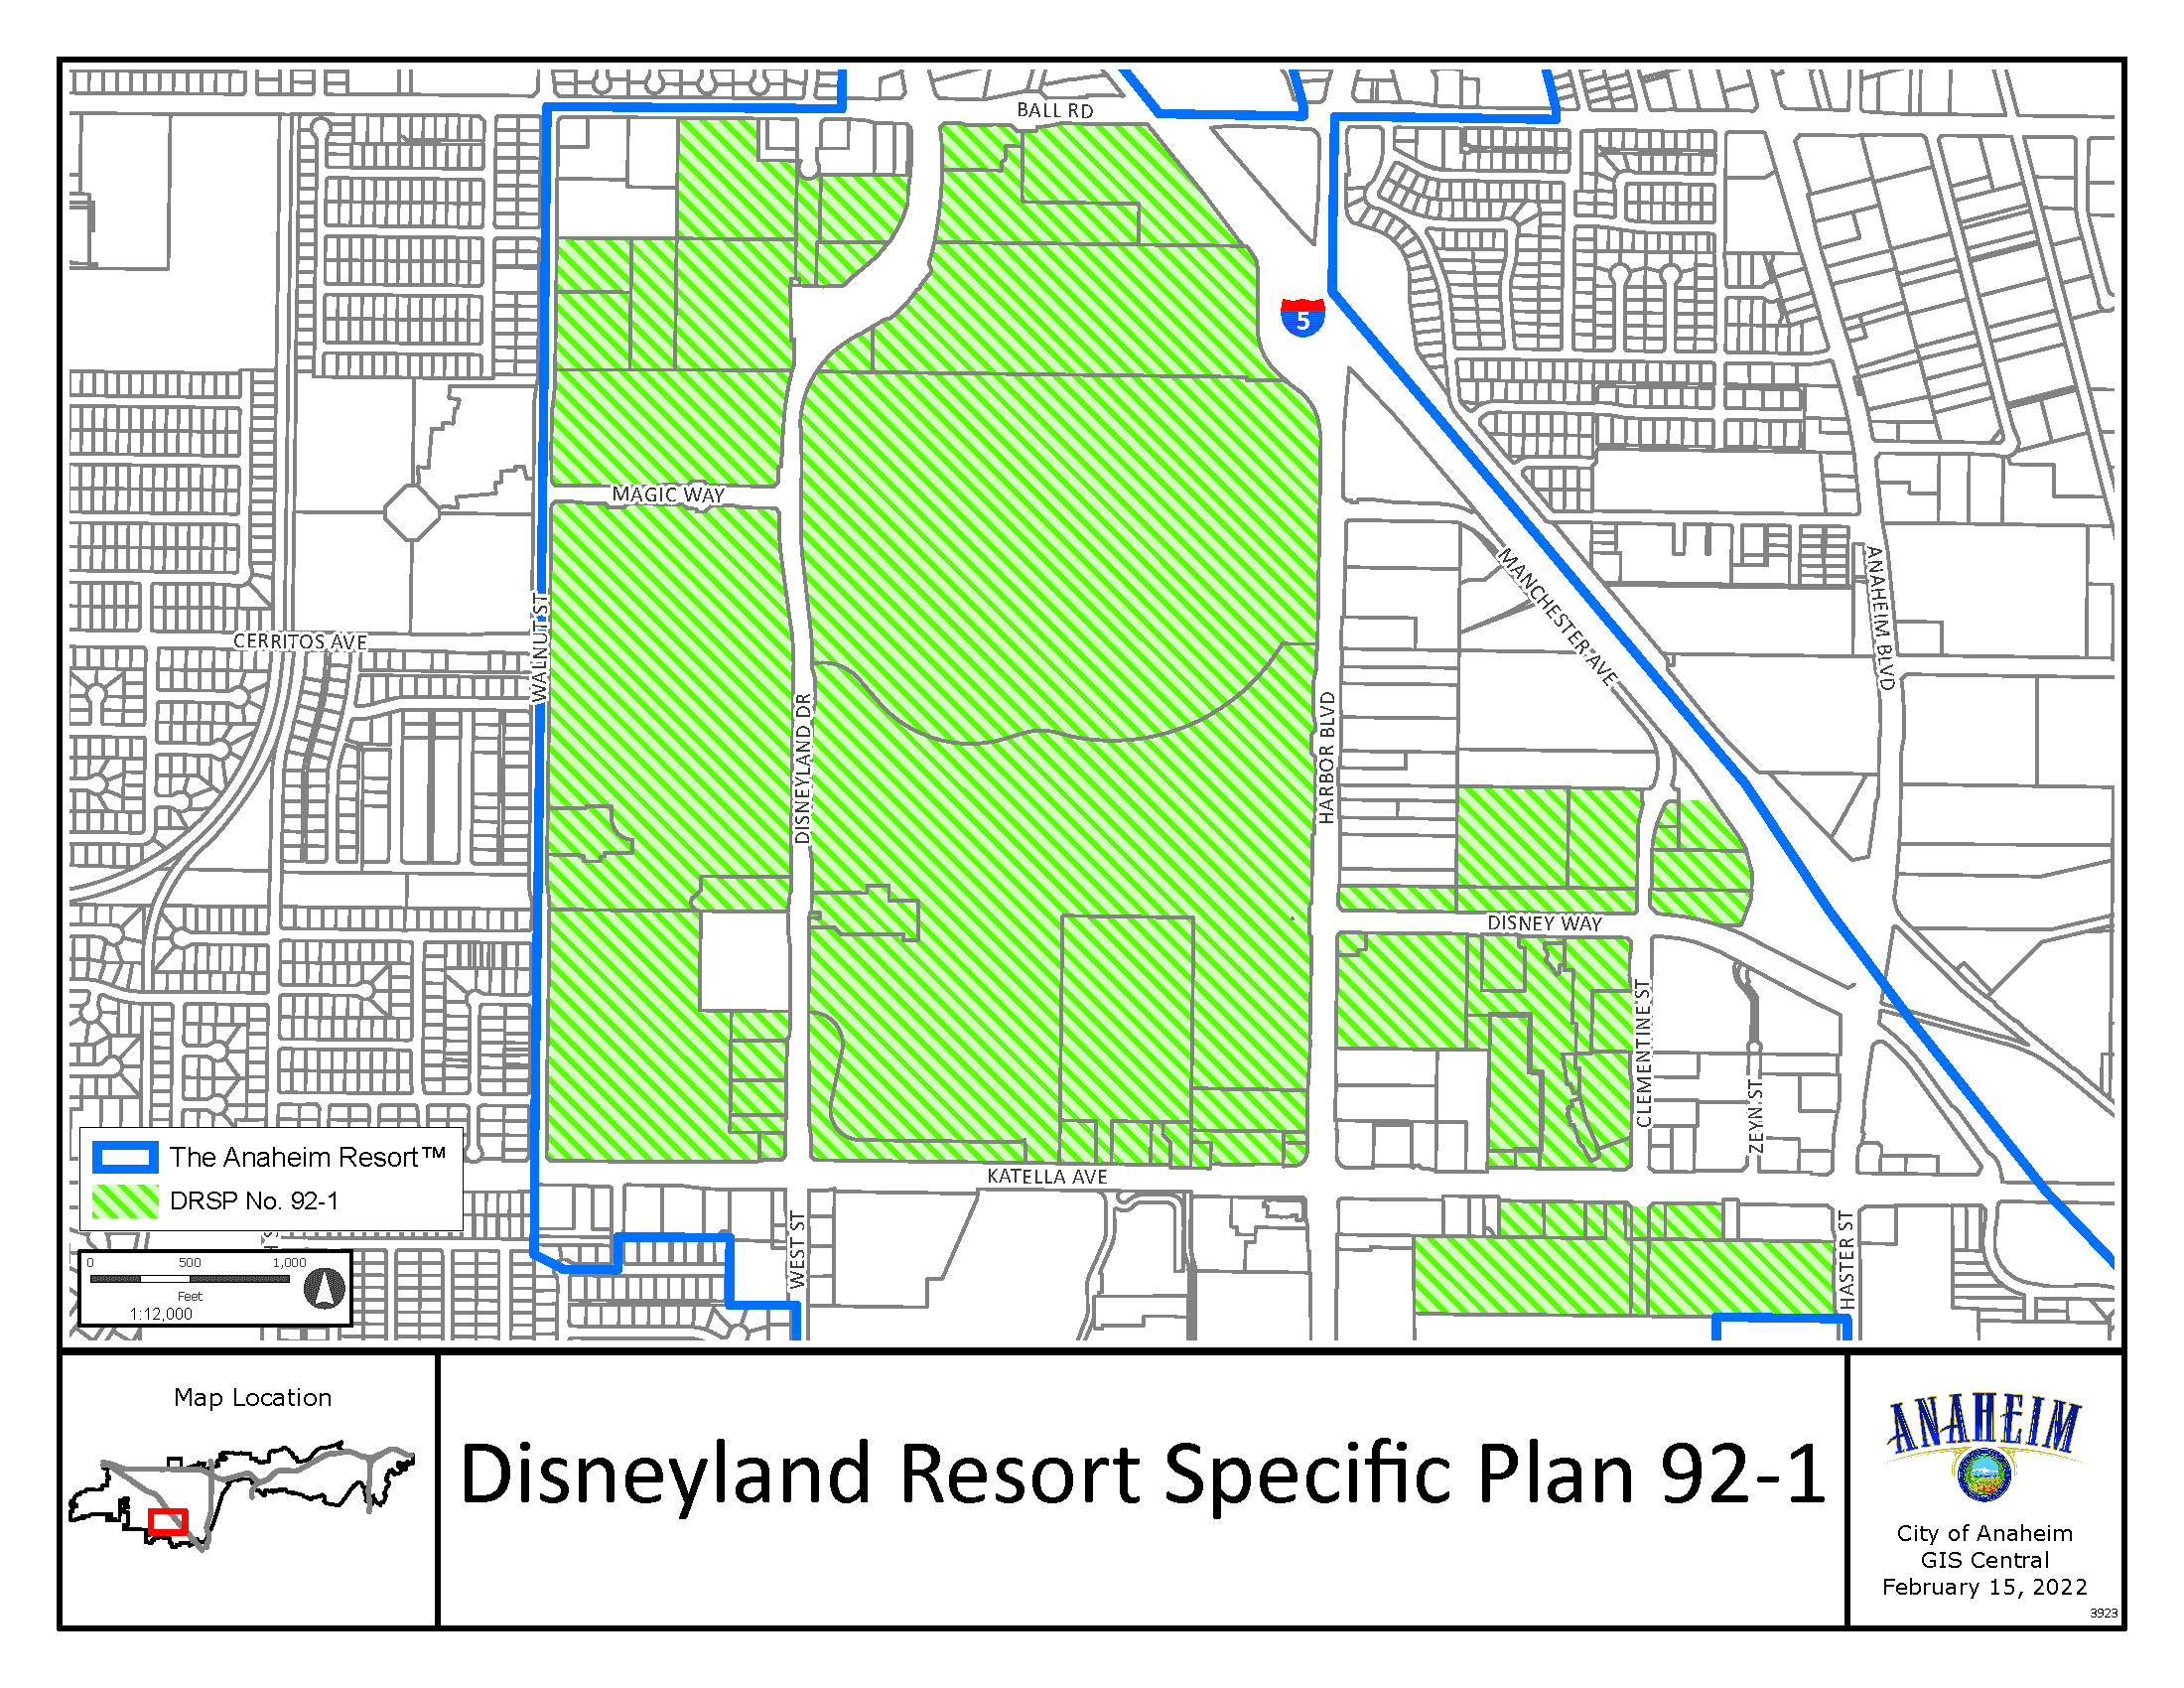 Disneyland Resort Specific Plan 92-1 Map Image